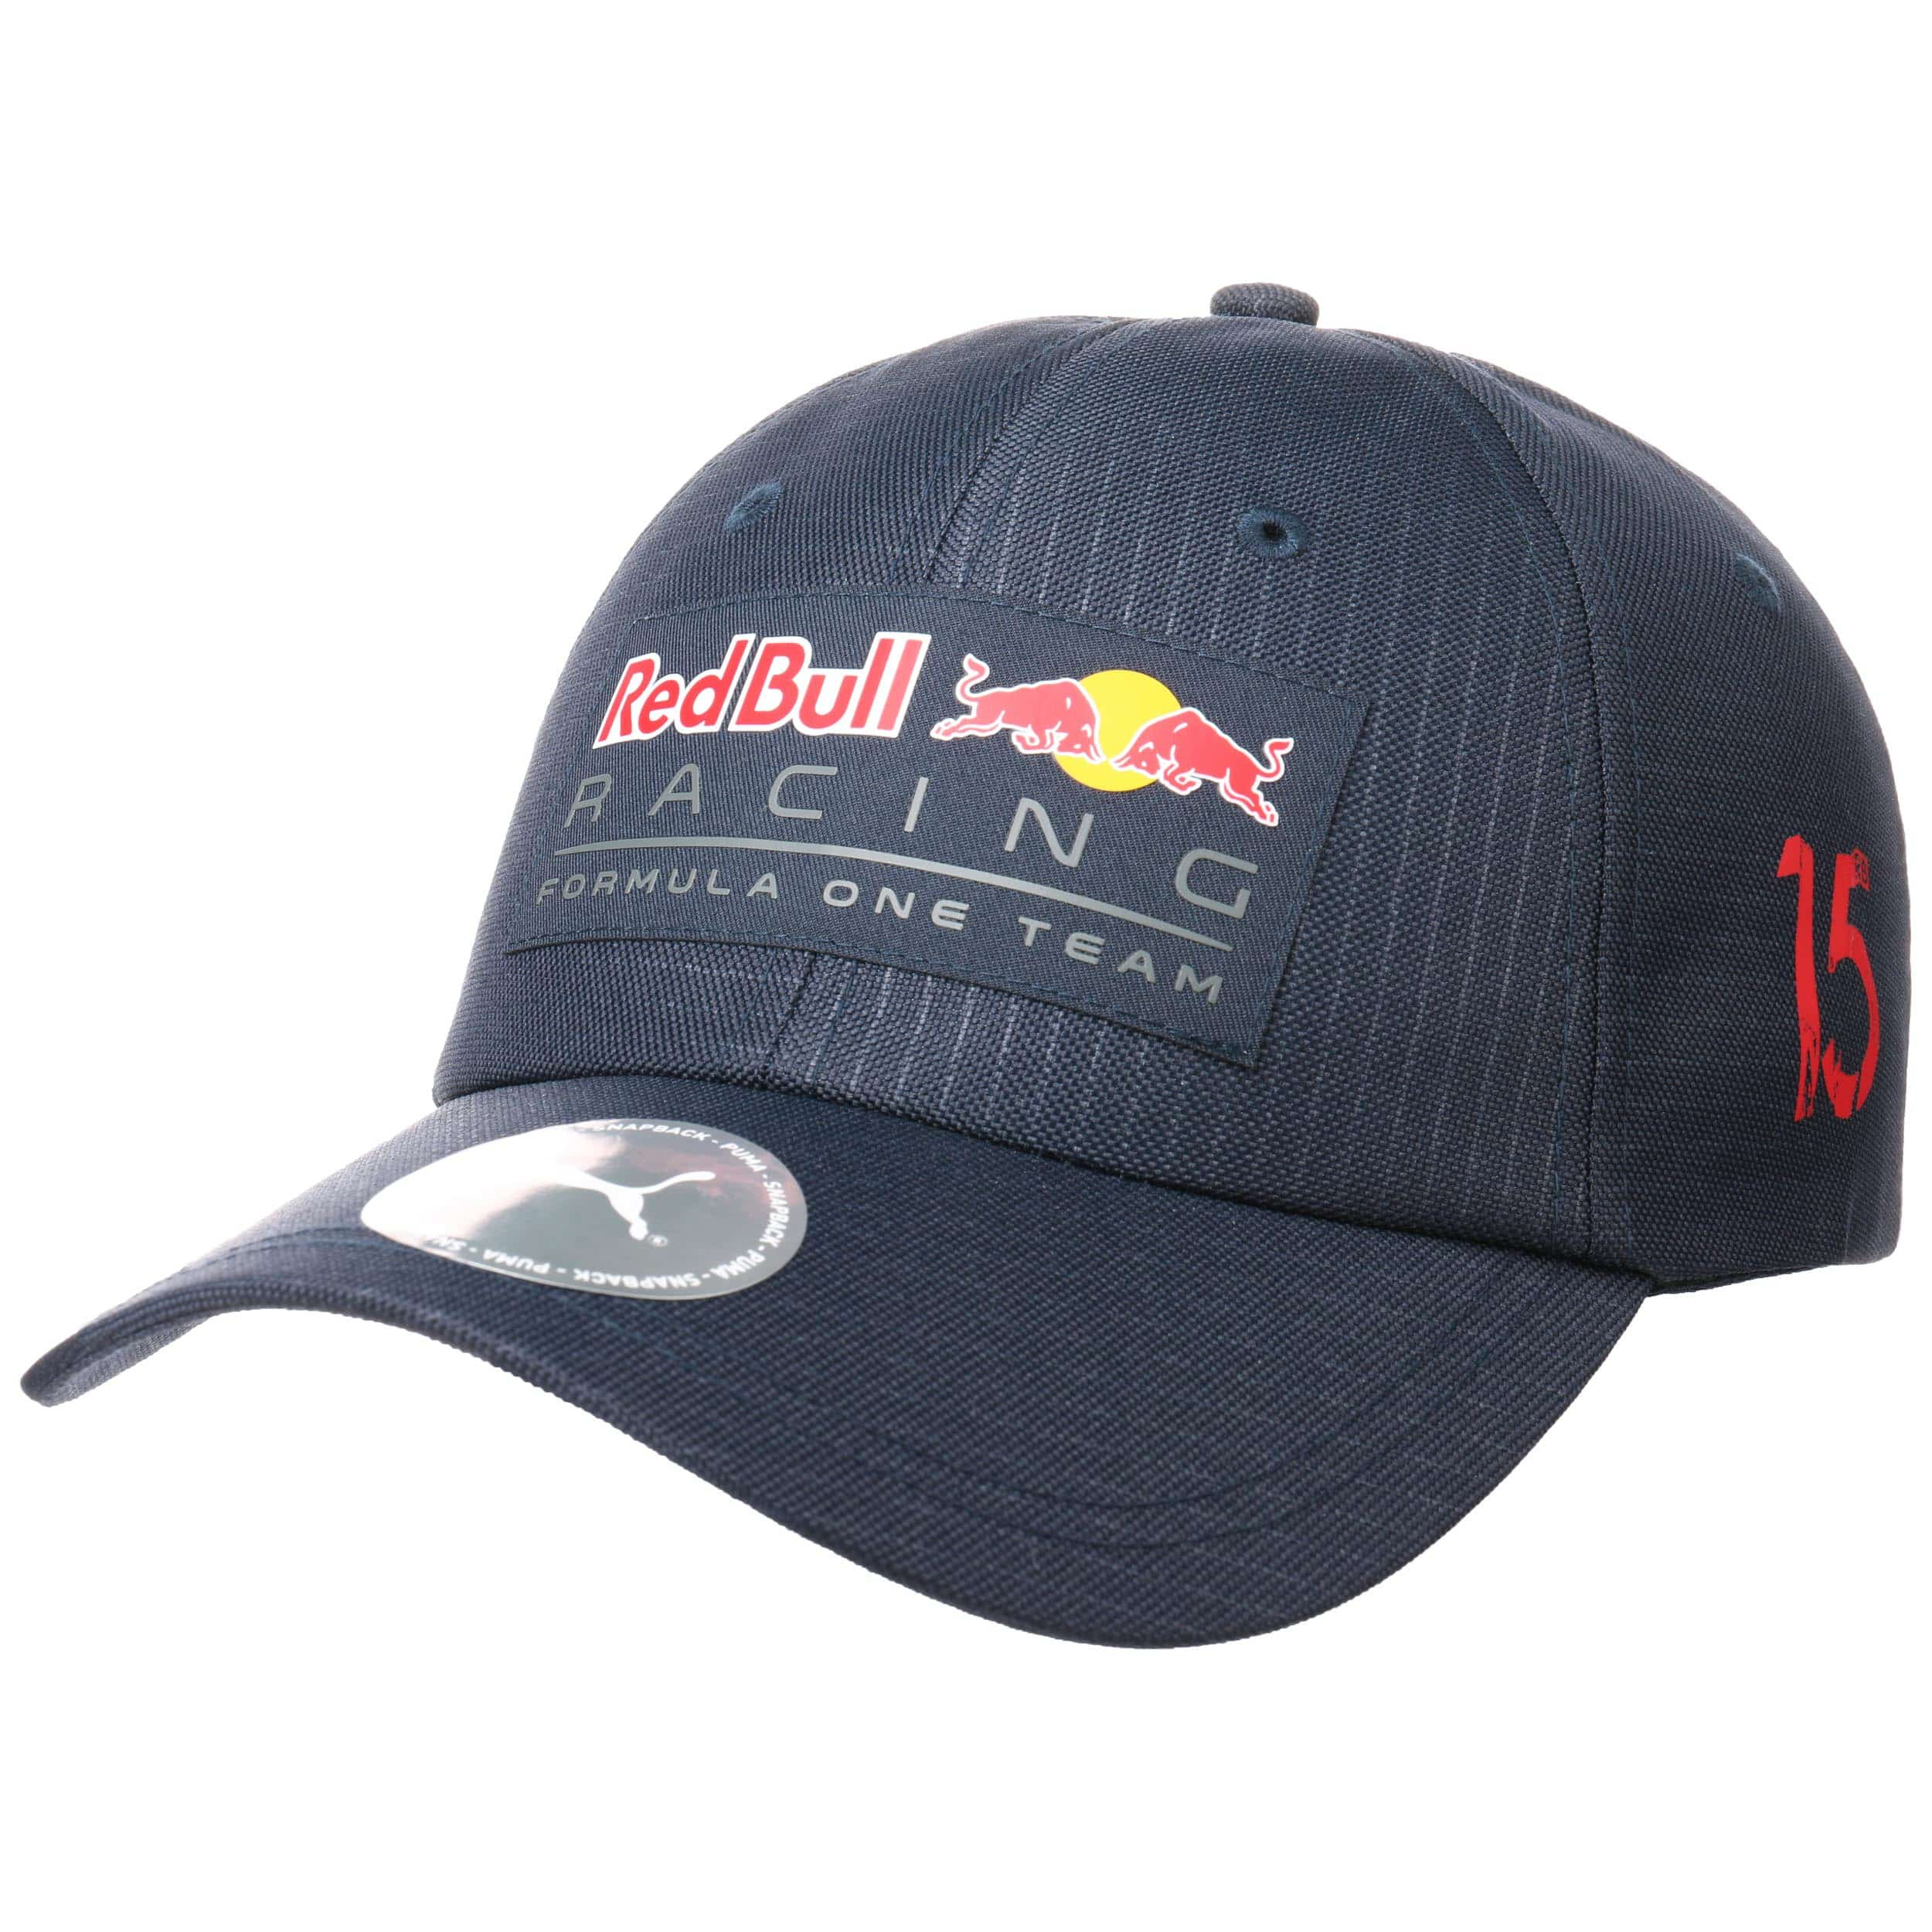 Red Bull Racing Lifestyle Curved Cap by PUMA